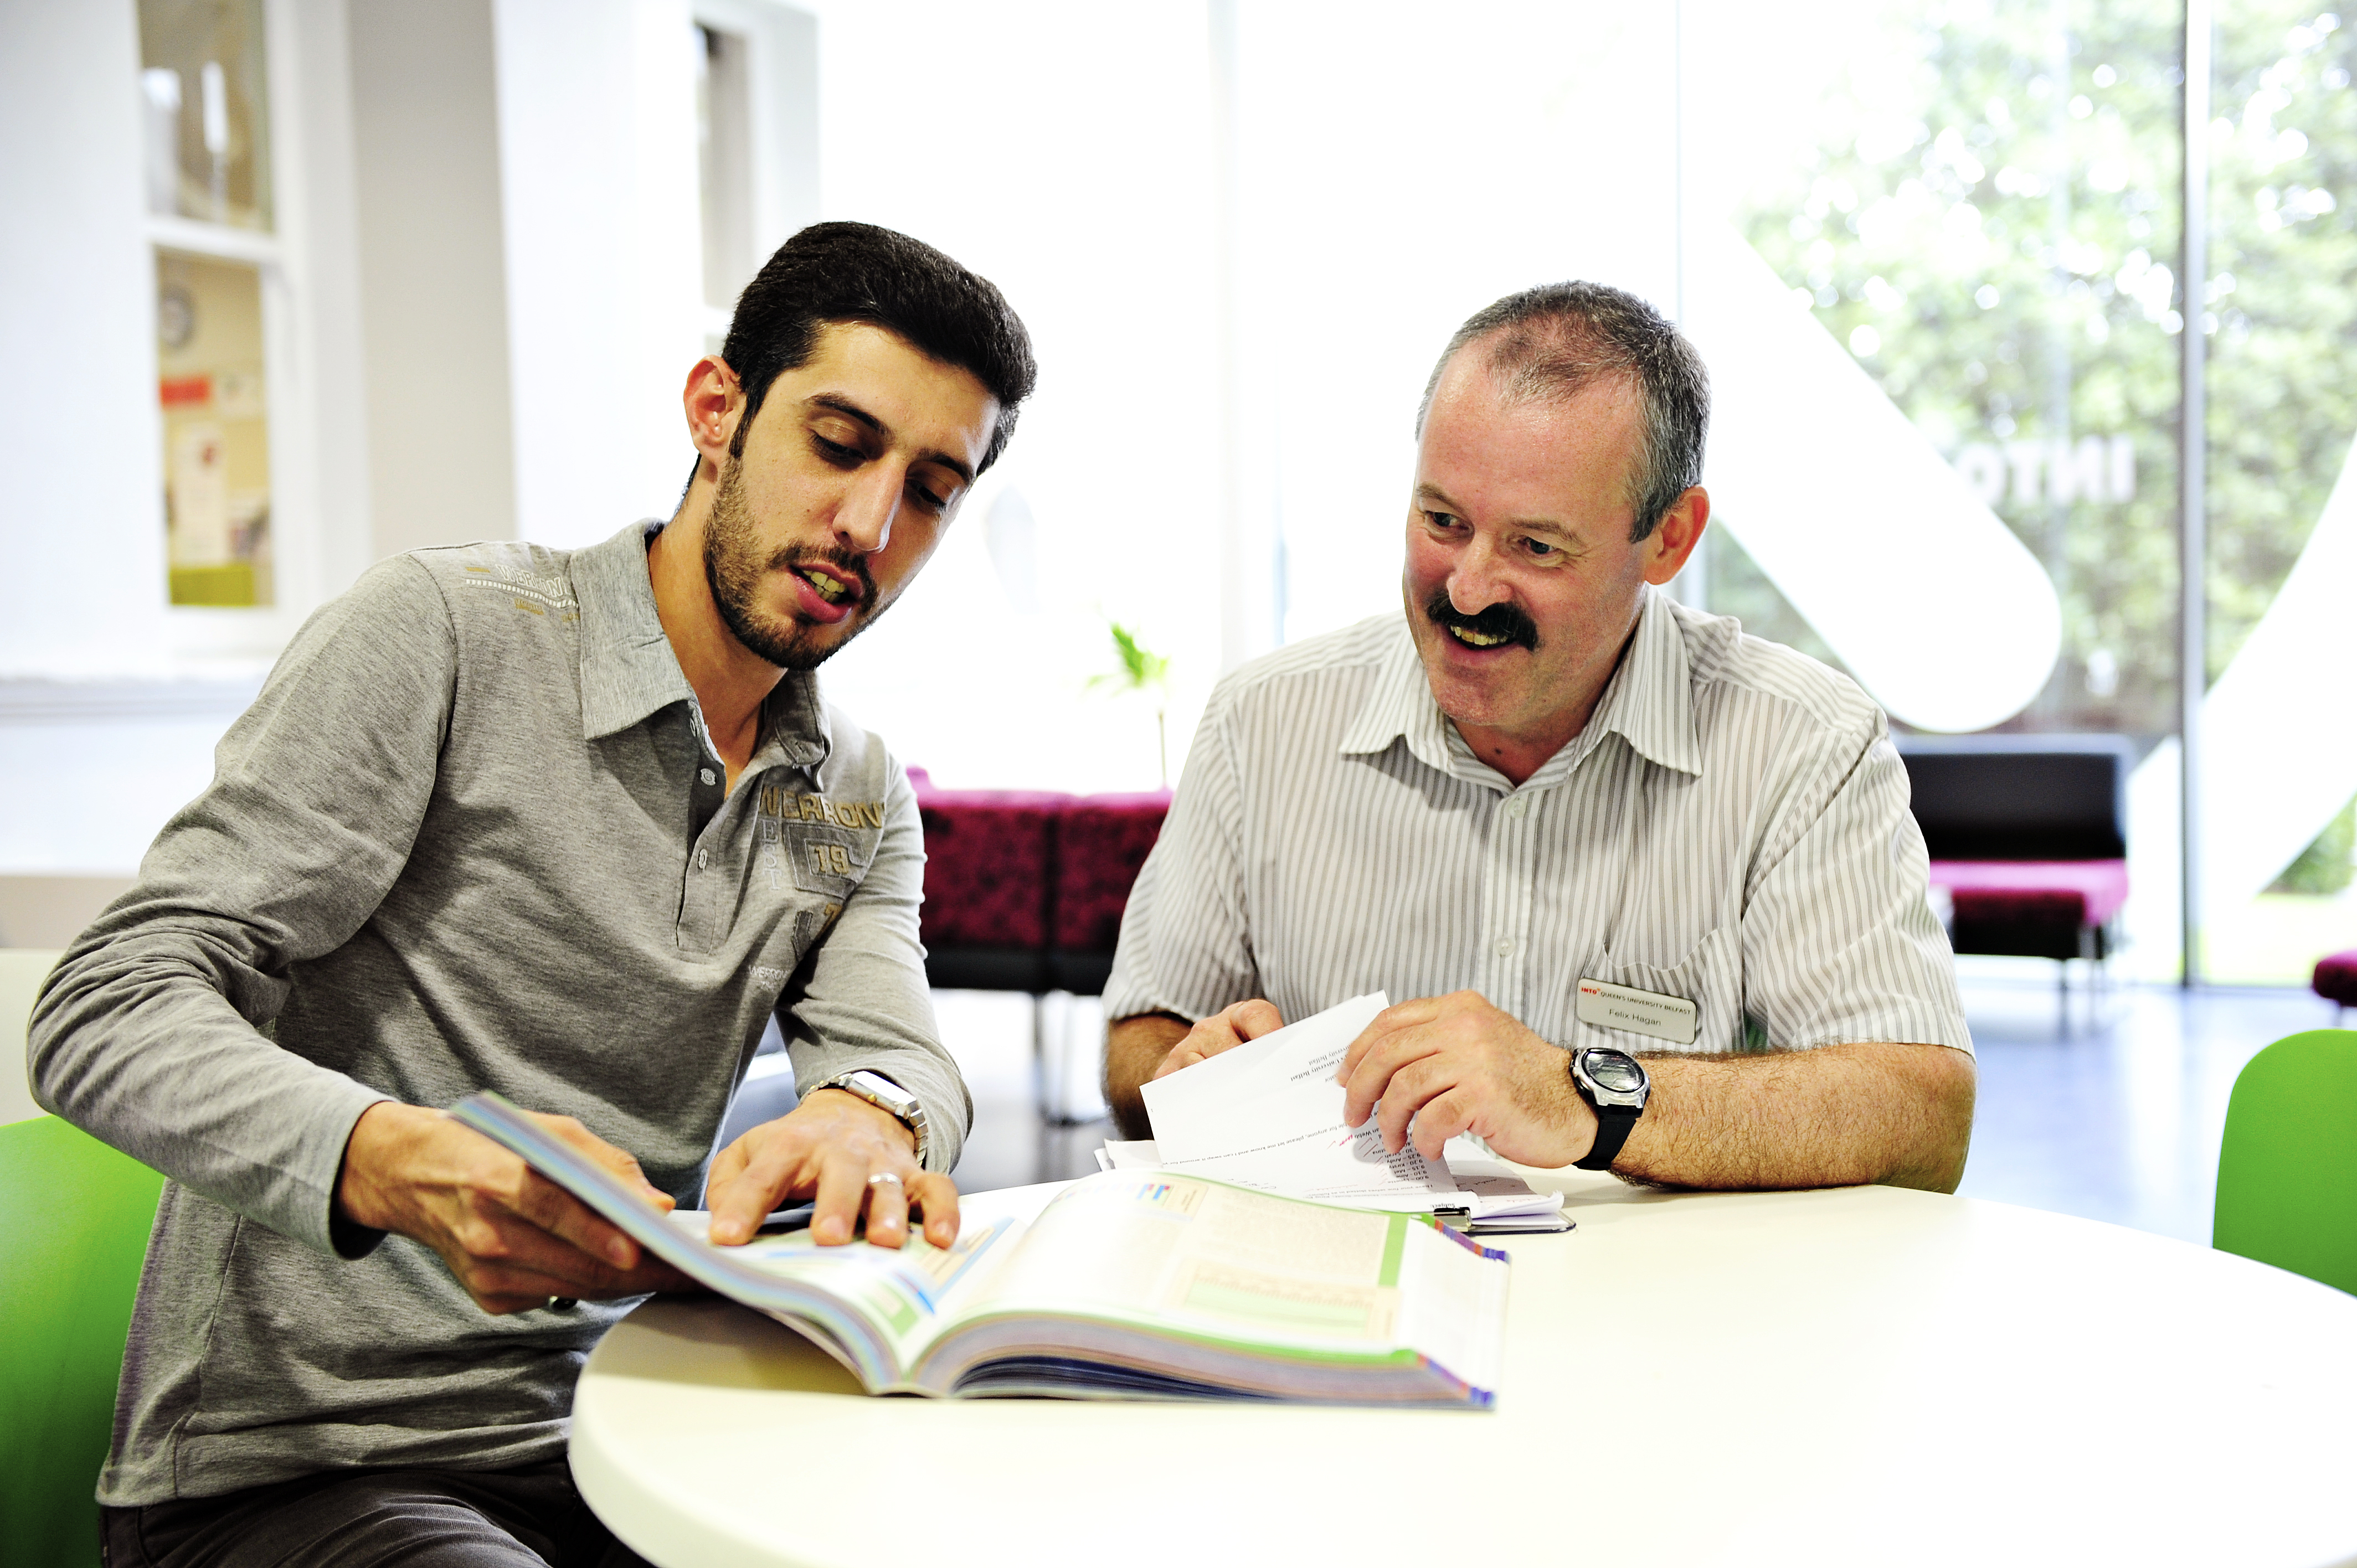 INTO QUB teacher helping student